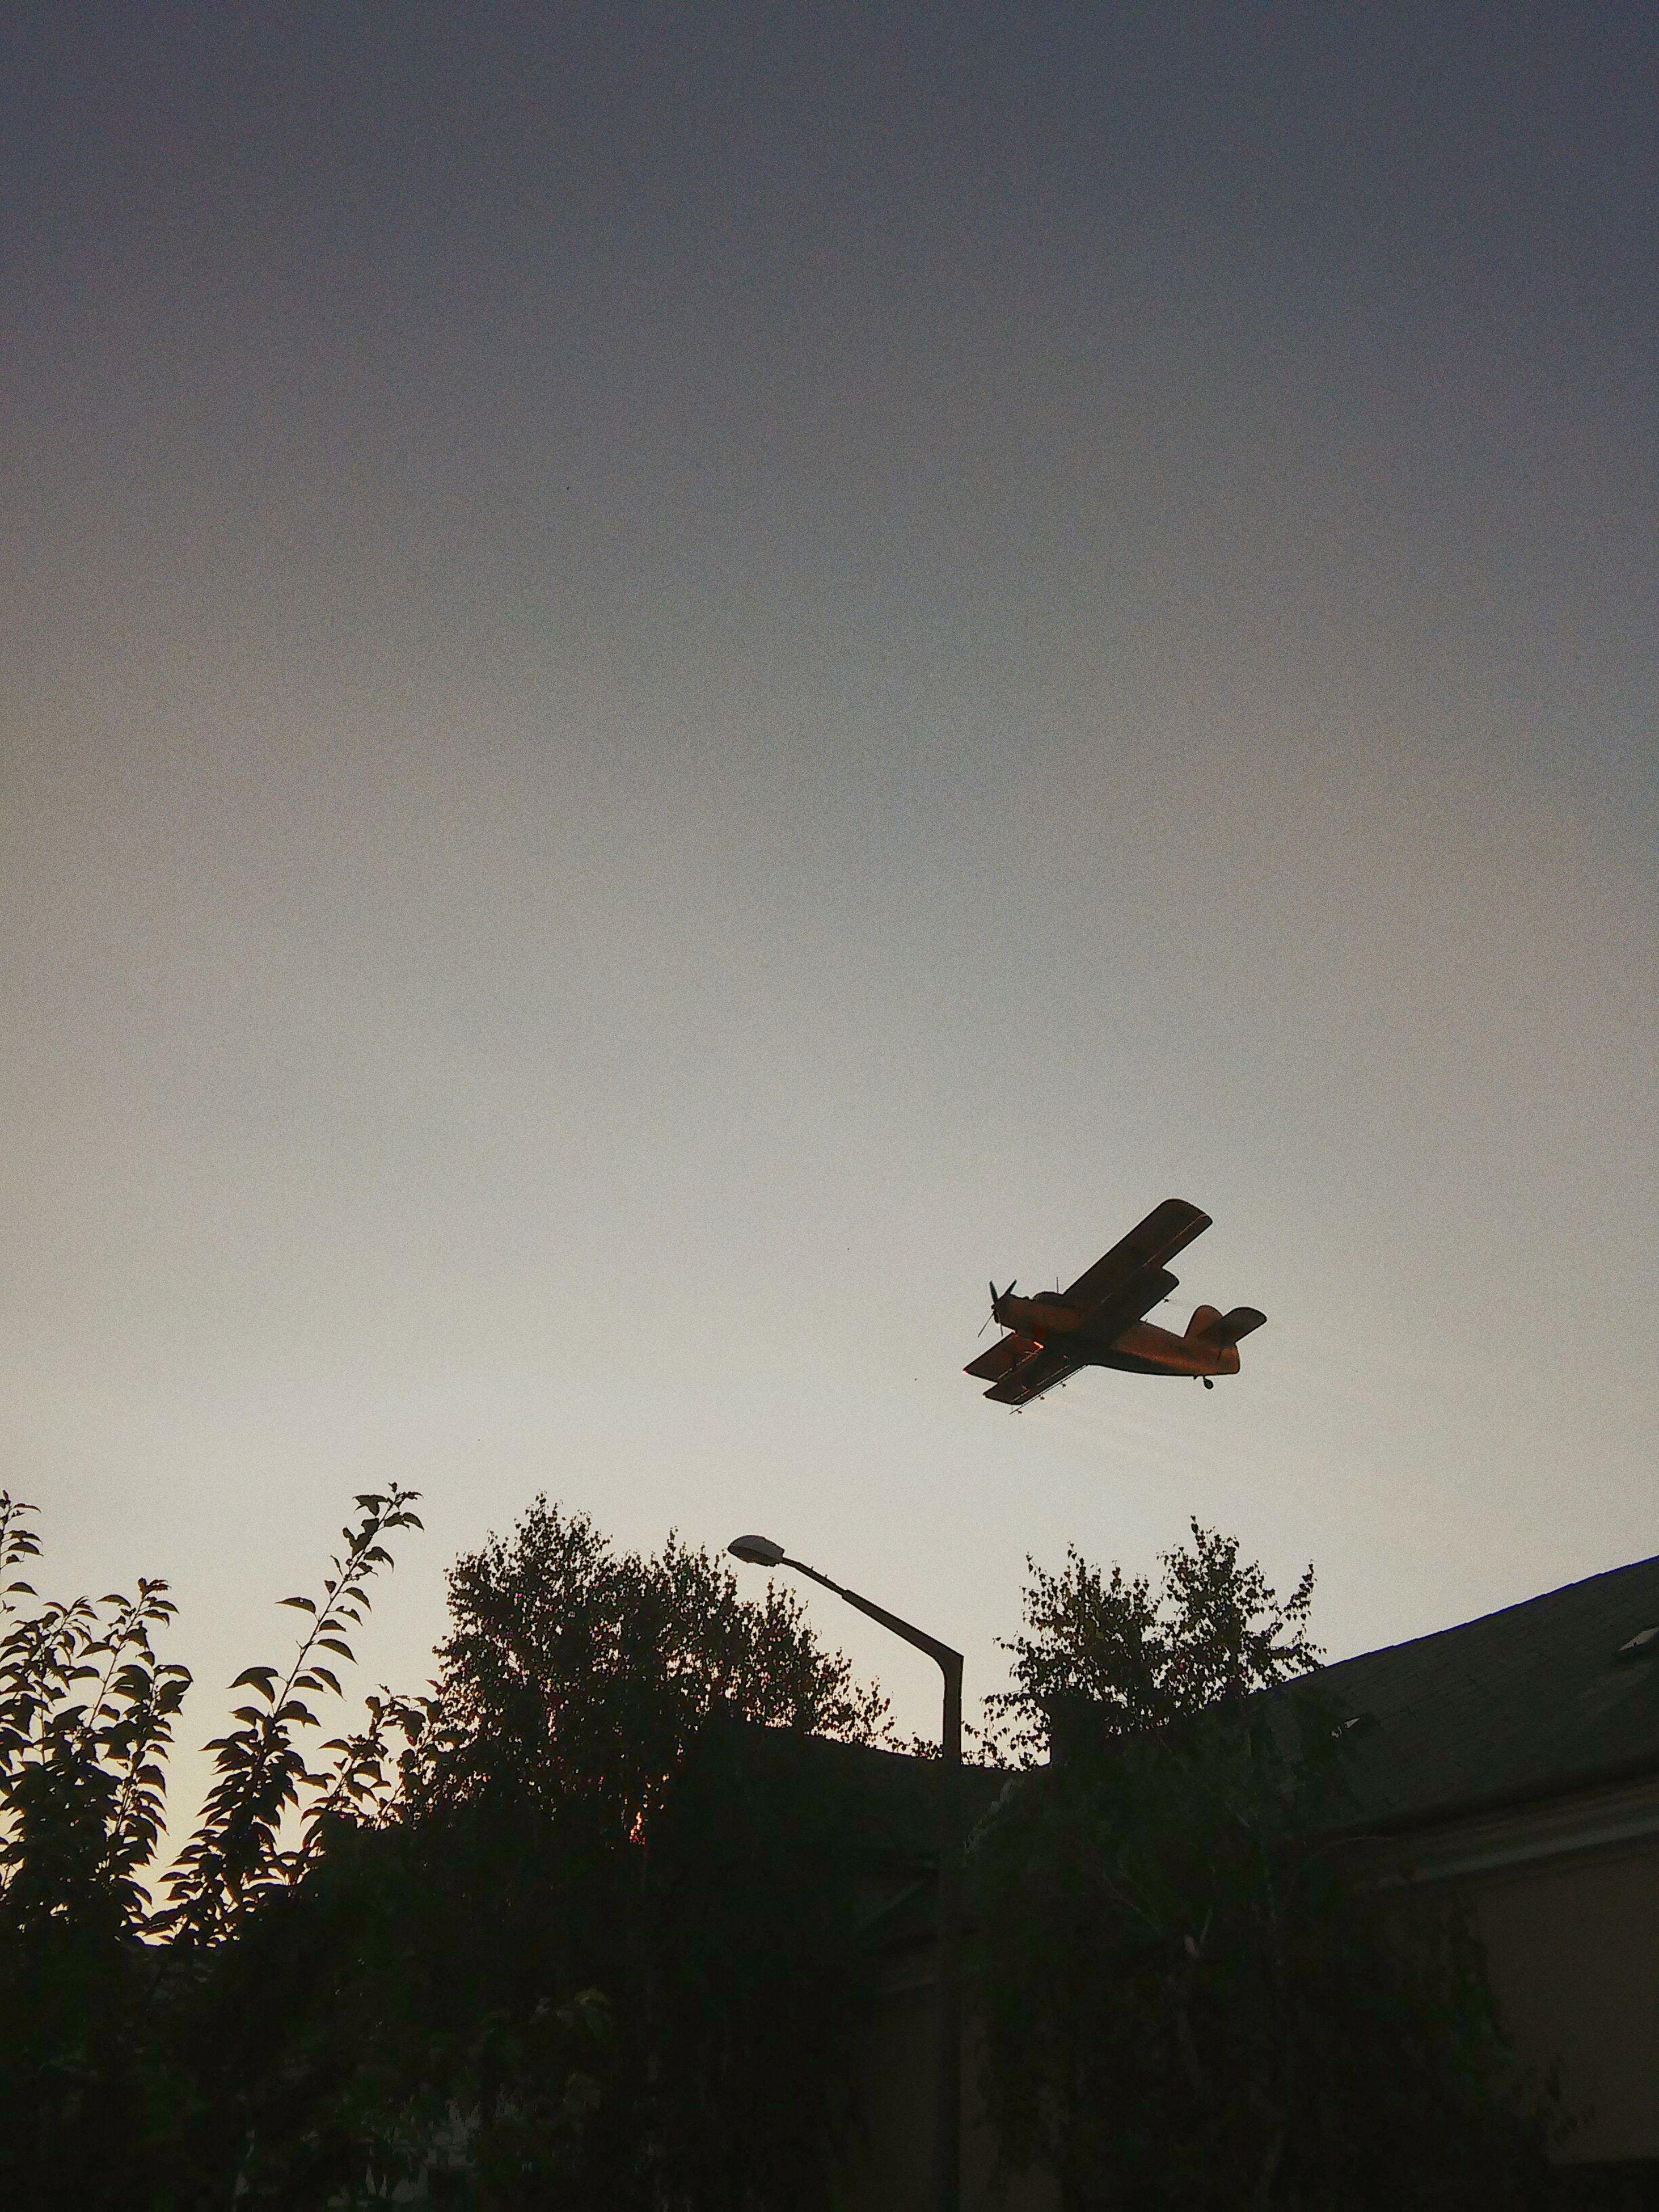 silhouette, transportation, flying, mode of transport, airplane, air vehicle, low angle view, mid-air, copy space, clear sky, sky, tree, dusk, outdoors, on the move, nature, travel, land vehicle, built structure, no people